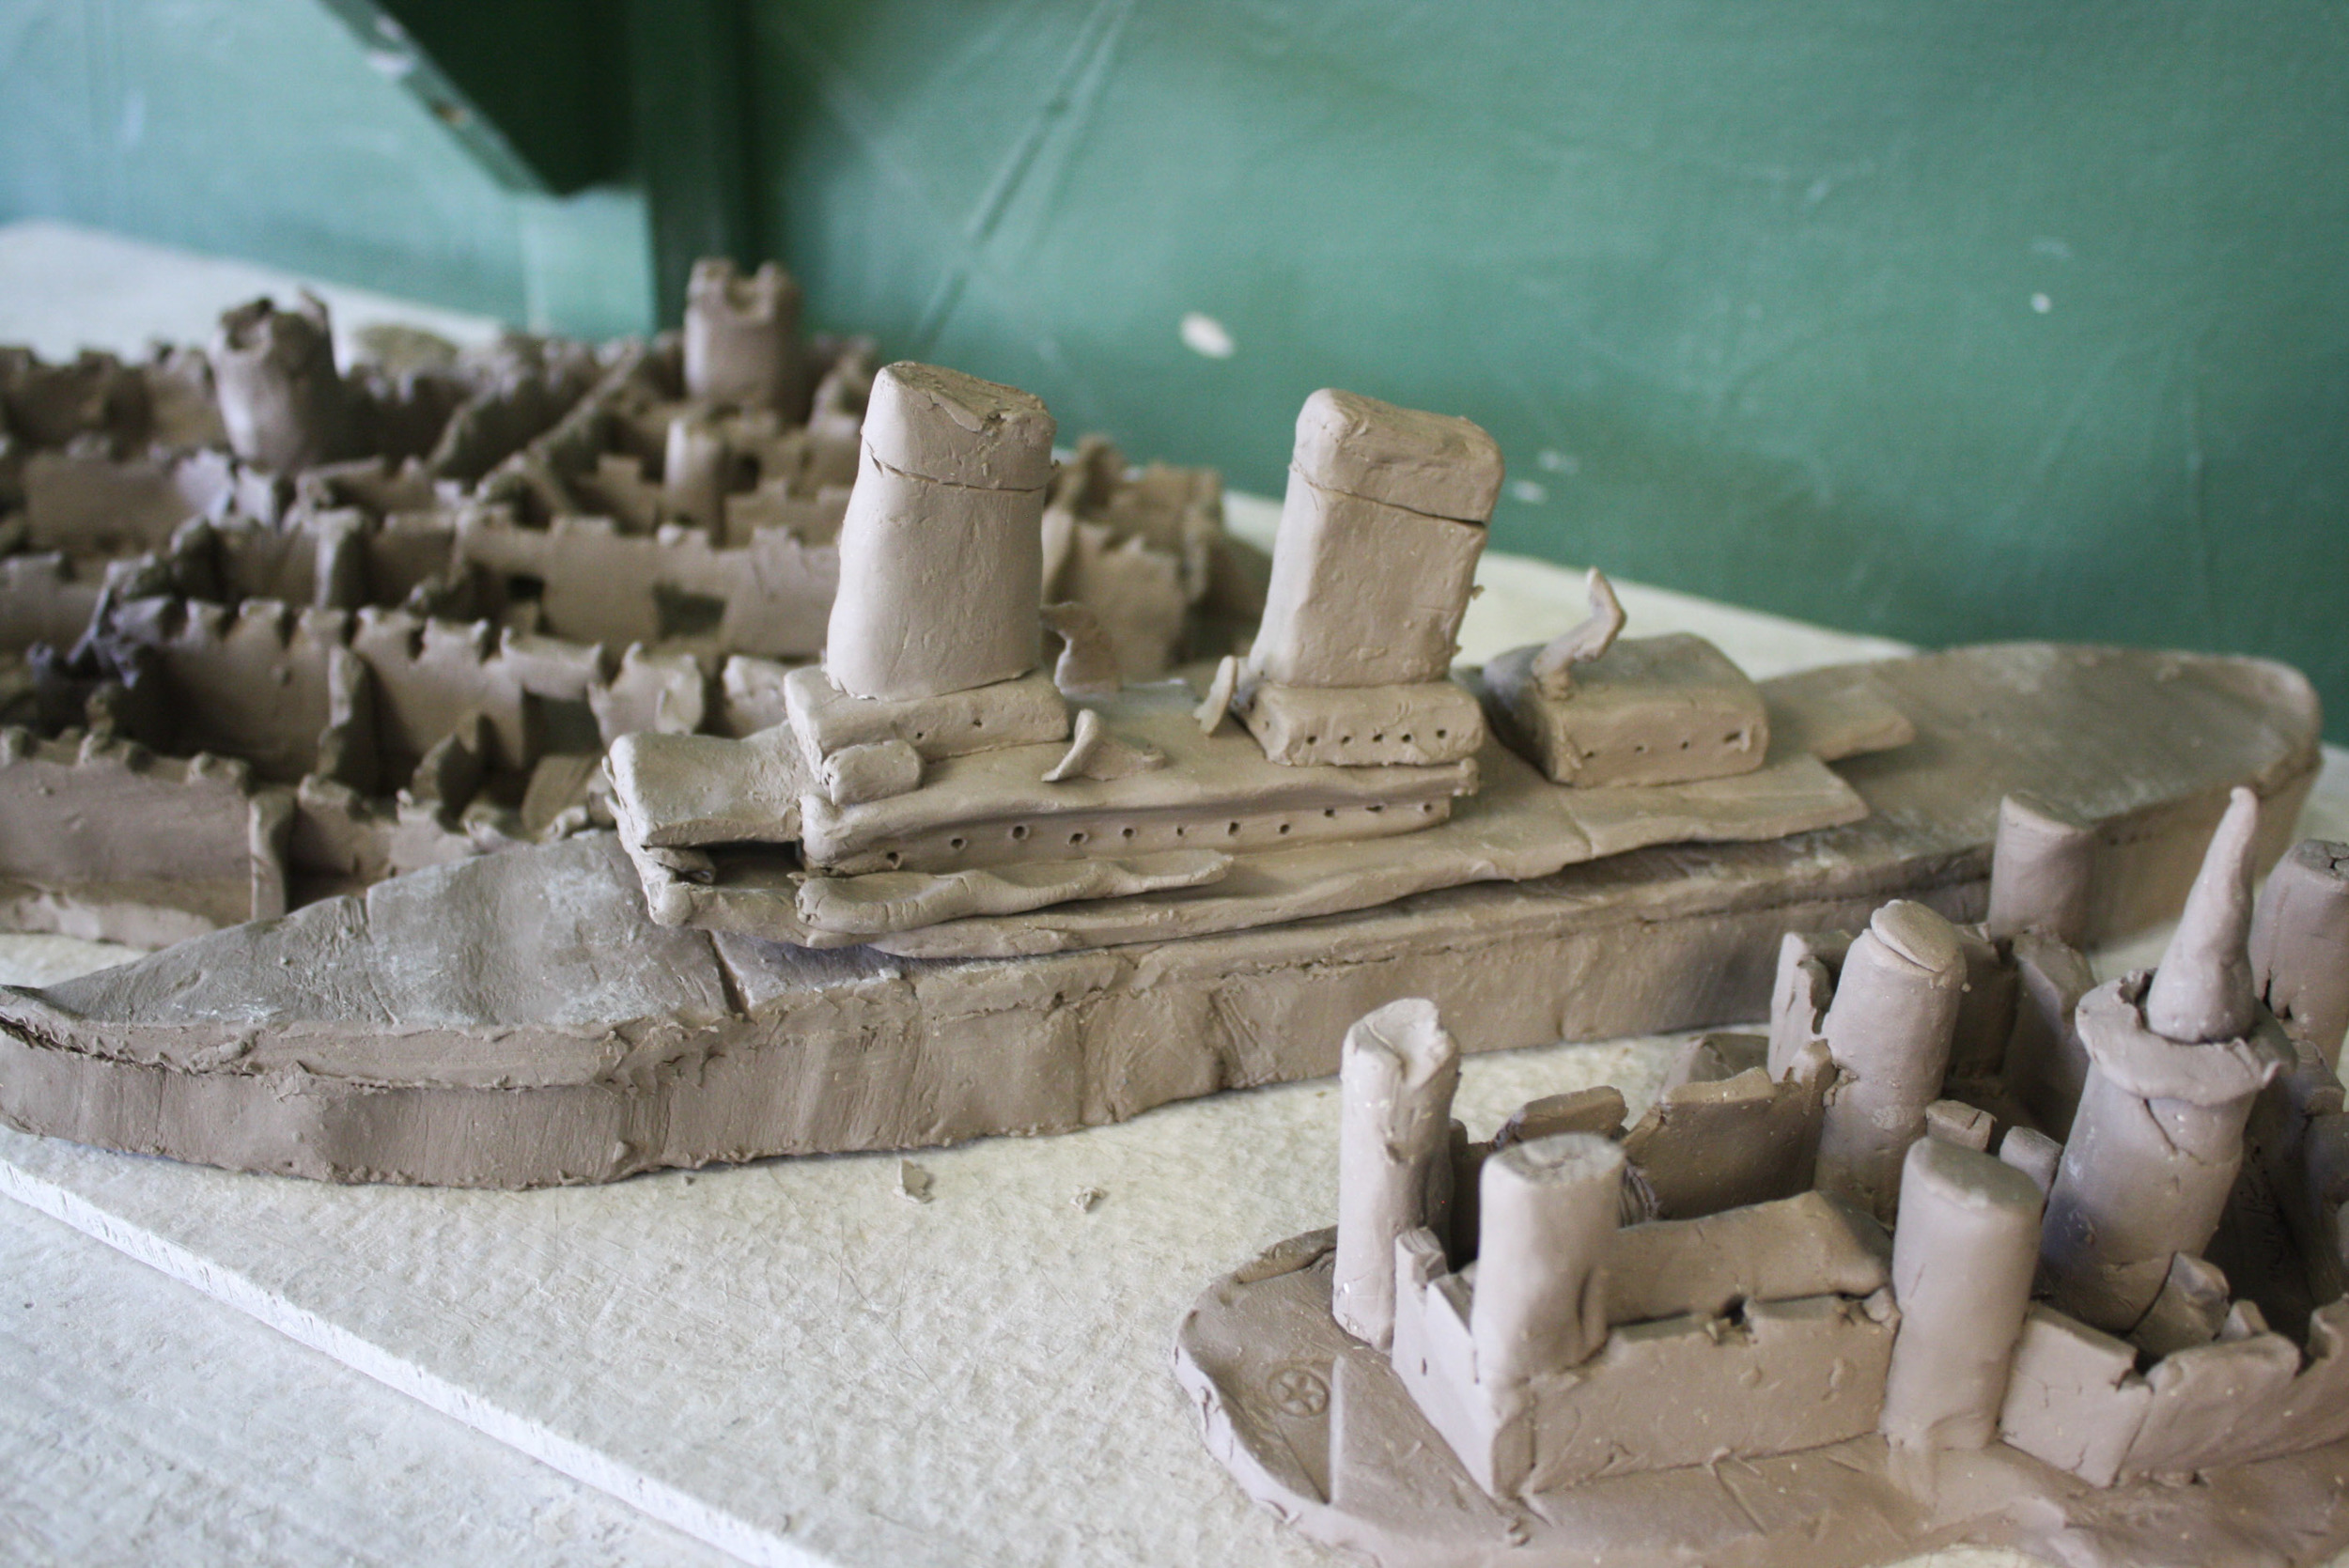 Kevin's 11-year-old nephew created these ships, which I thought were beyond-cool